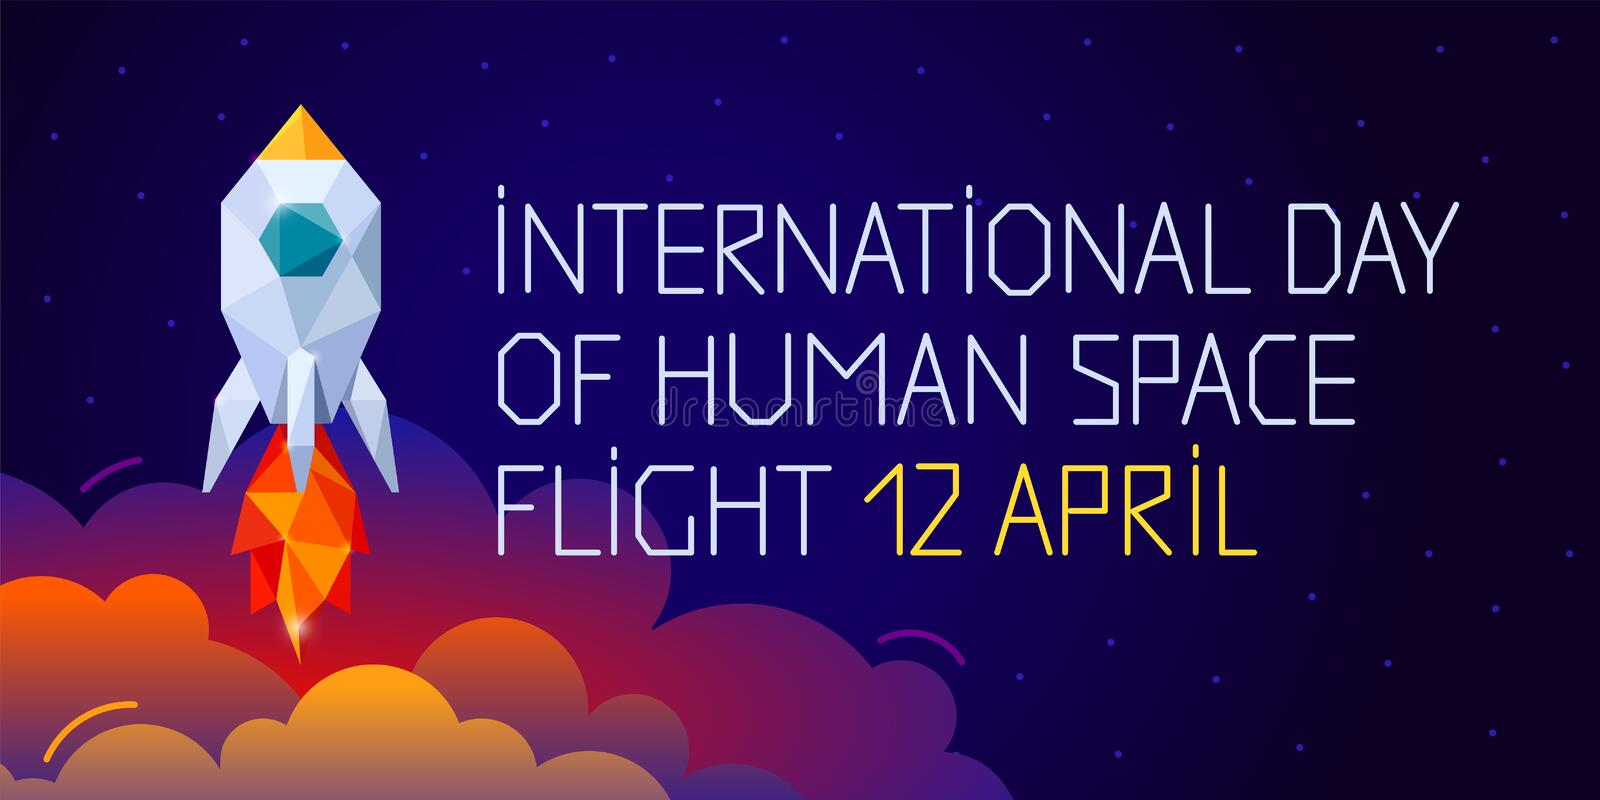 International day of human space flight. 12 April. Cosmonauts Day horizontal web banner with rocket. Polygonal style royalty free illustration